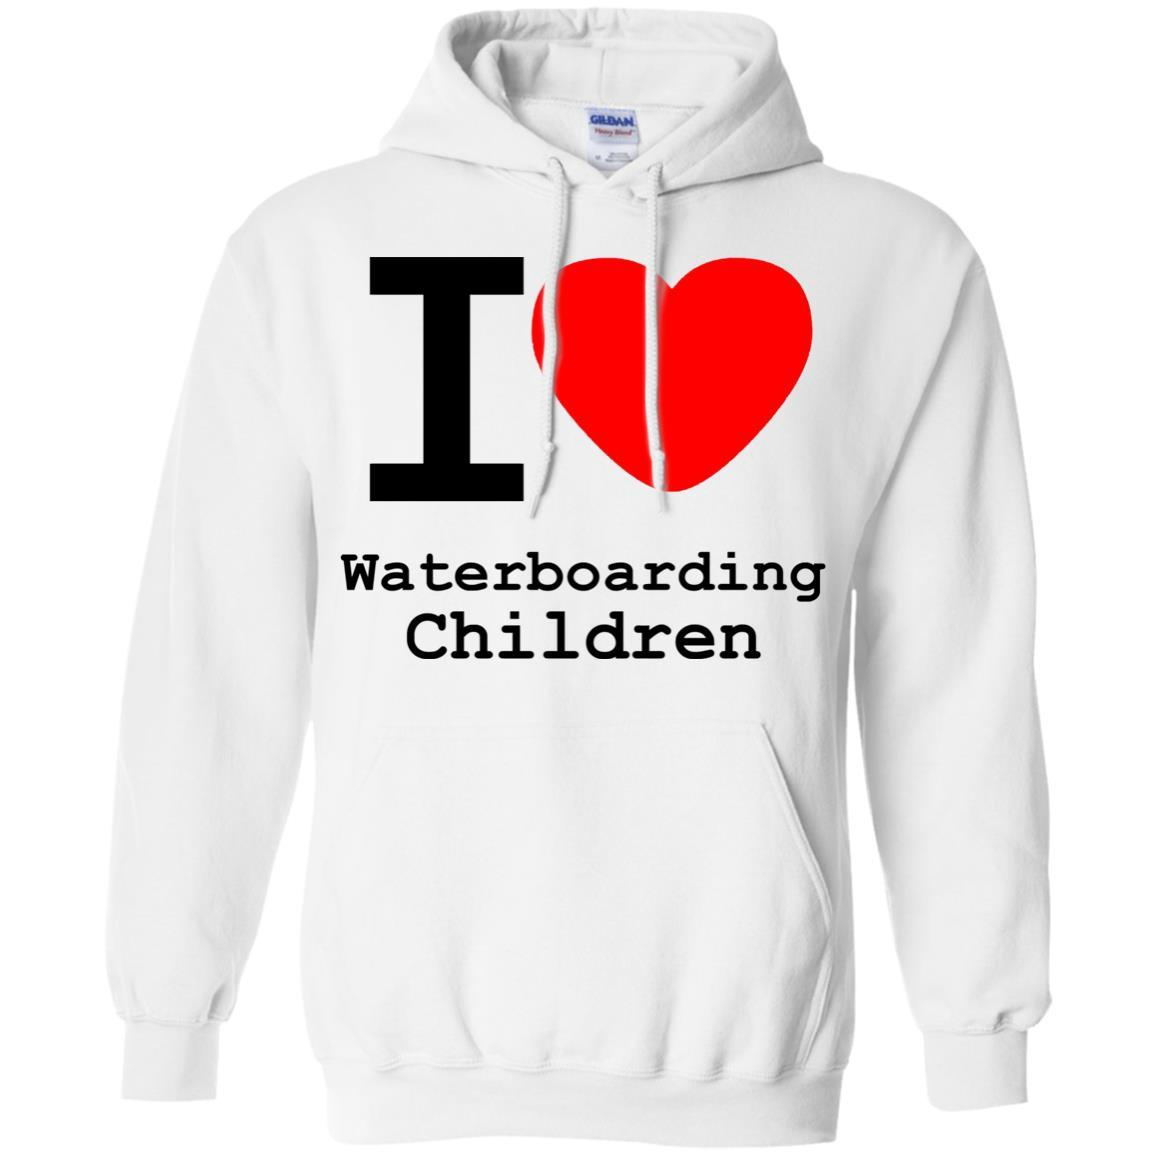 I love Waterboarding Children - Pullover Hoodie White / 5XL